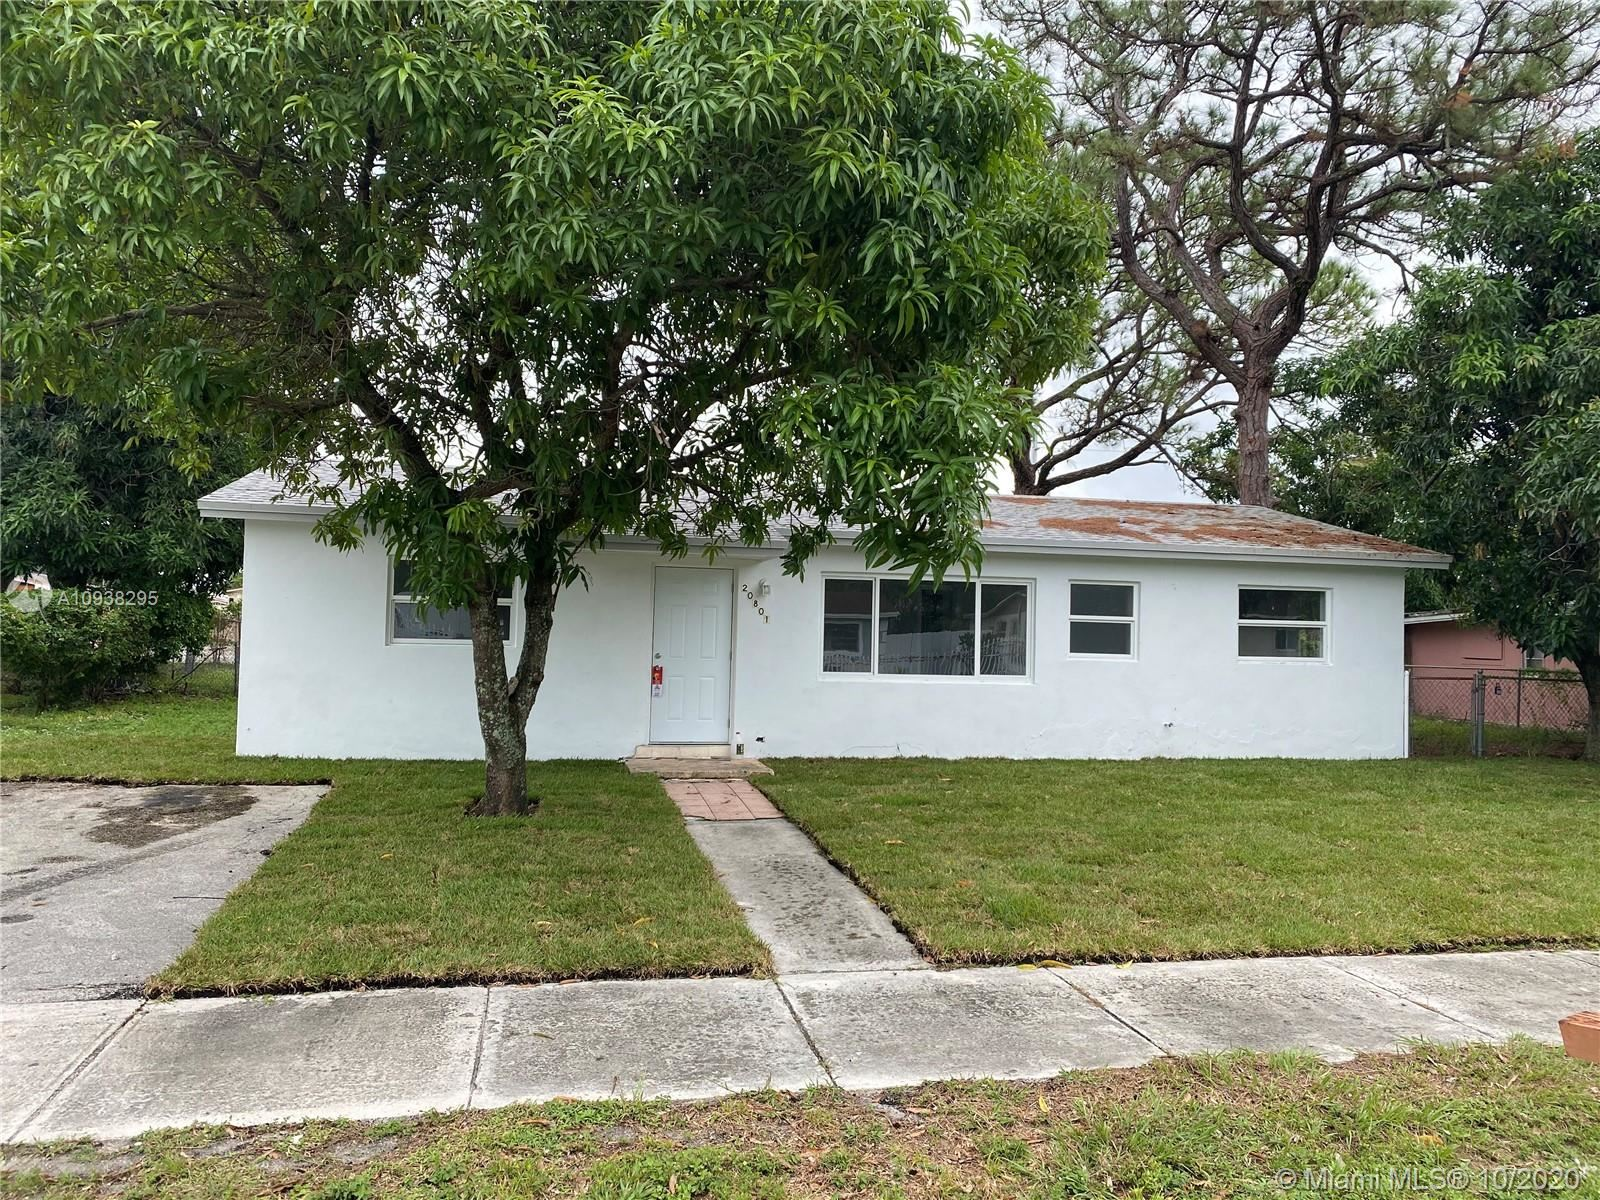 20801 NW 37th Ct, Miami Gardens, FL 33055 - #: A10938295